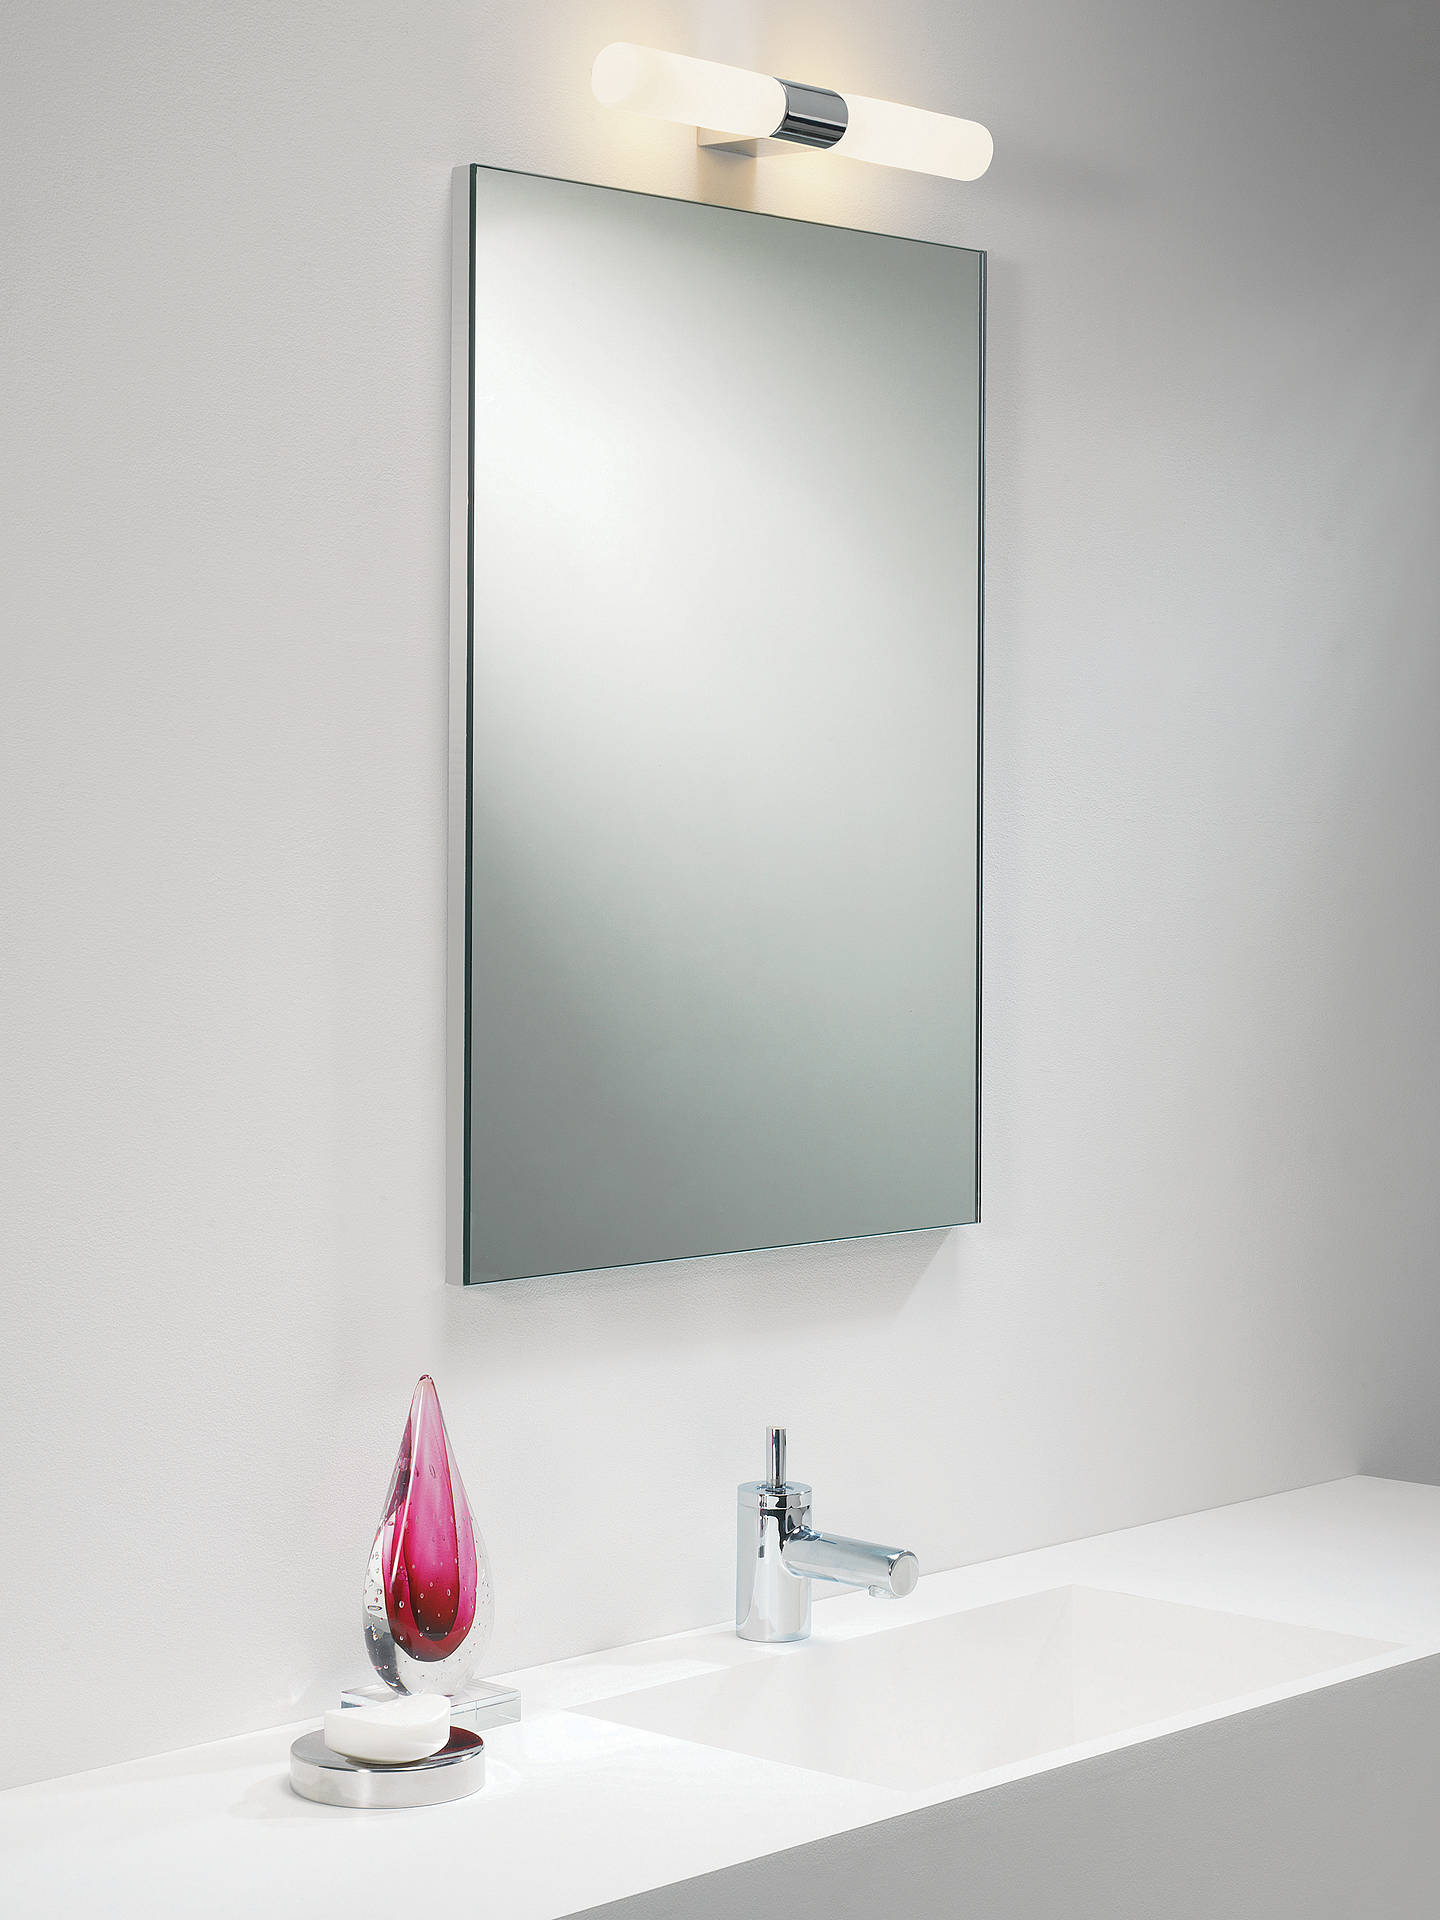 BuyAstro Padova Over Mirror Bathroom Light Online at johnlewis.com